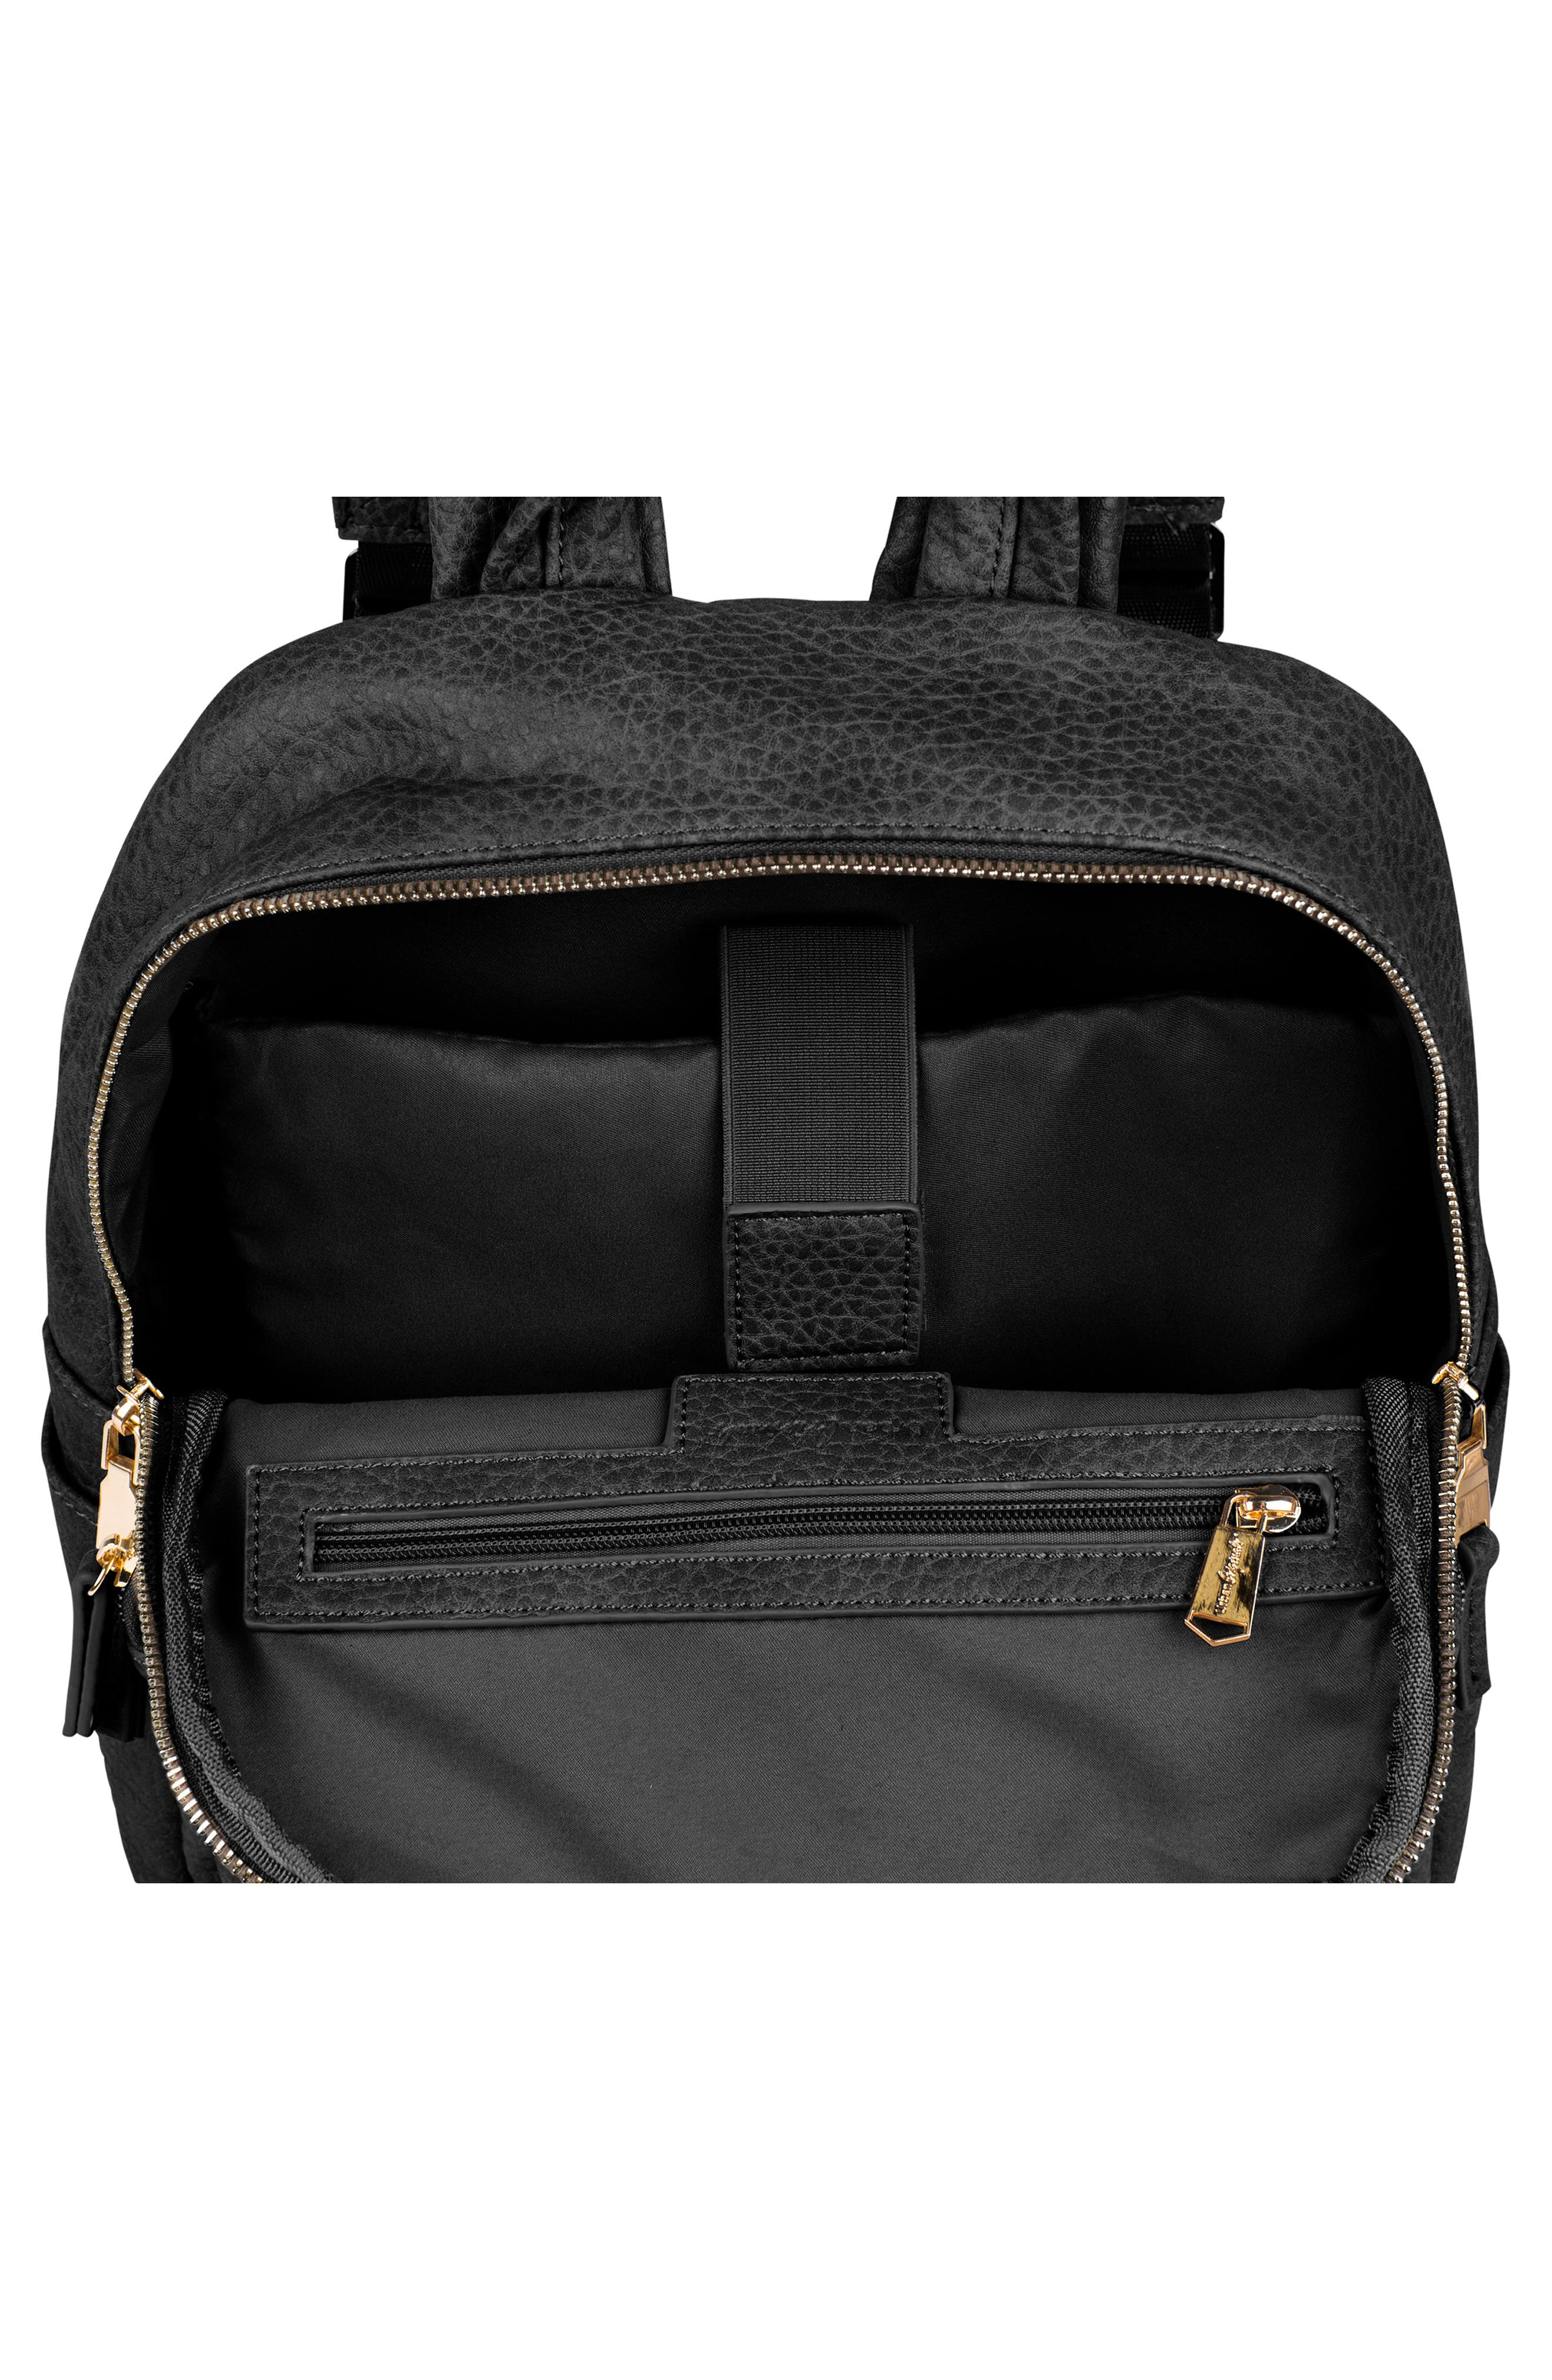 URBAN ORIGINALS,                             Bold Move Vegan Leather Laptop Backpack,                             Alternate thumbnail 3, color,                             BLACK